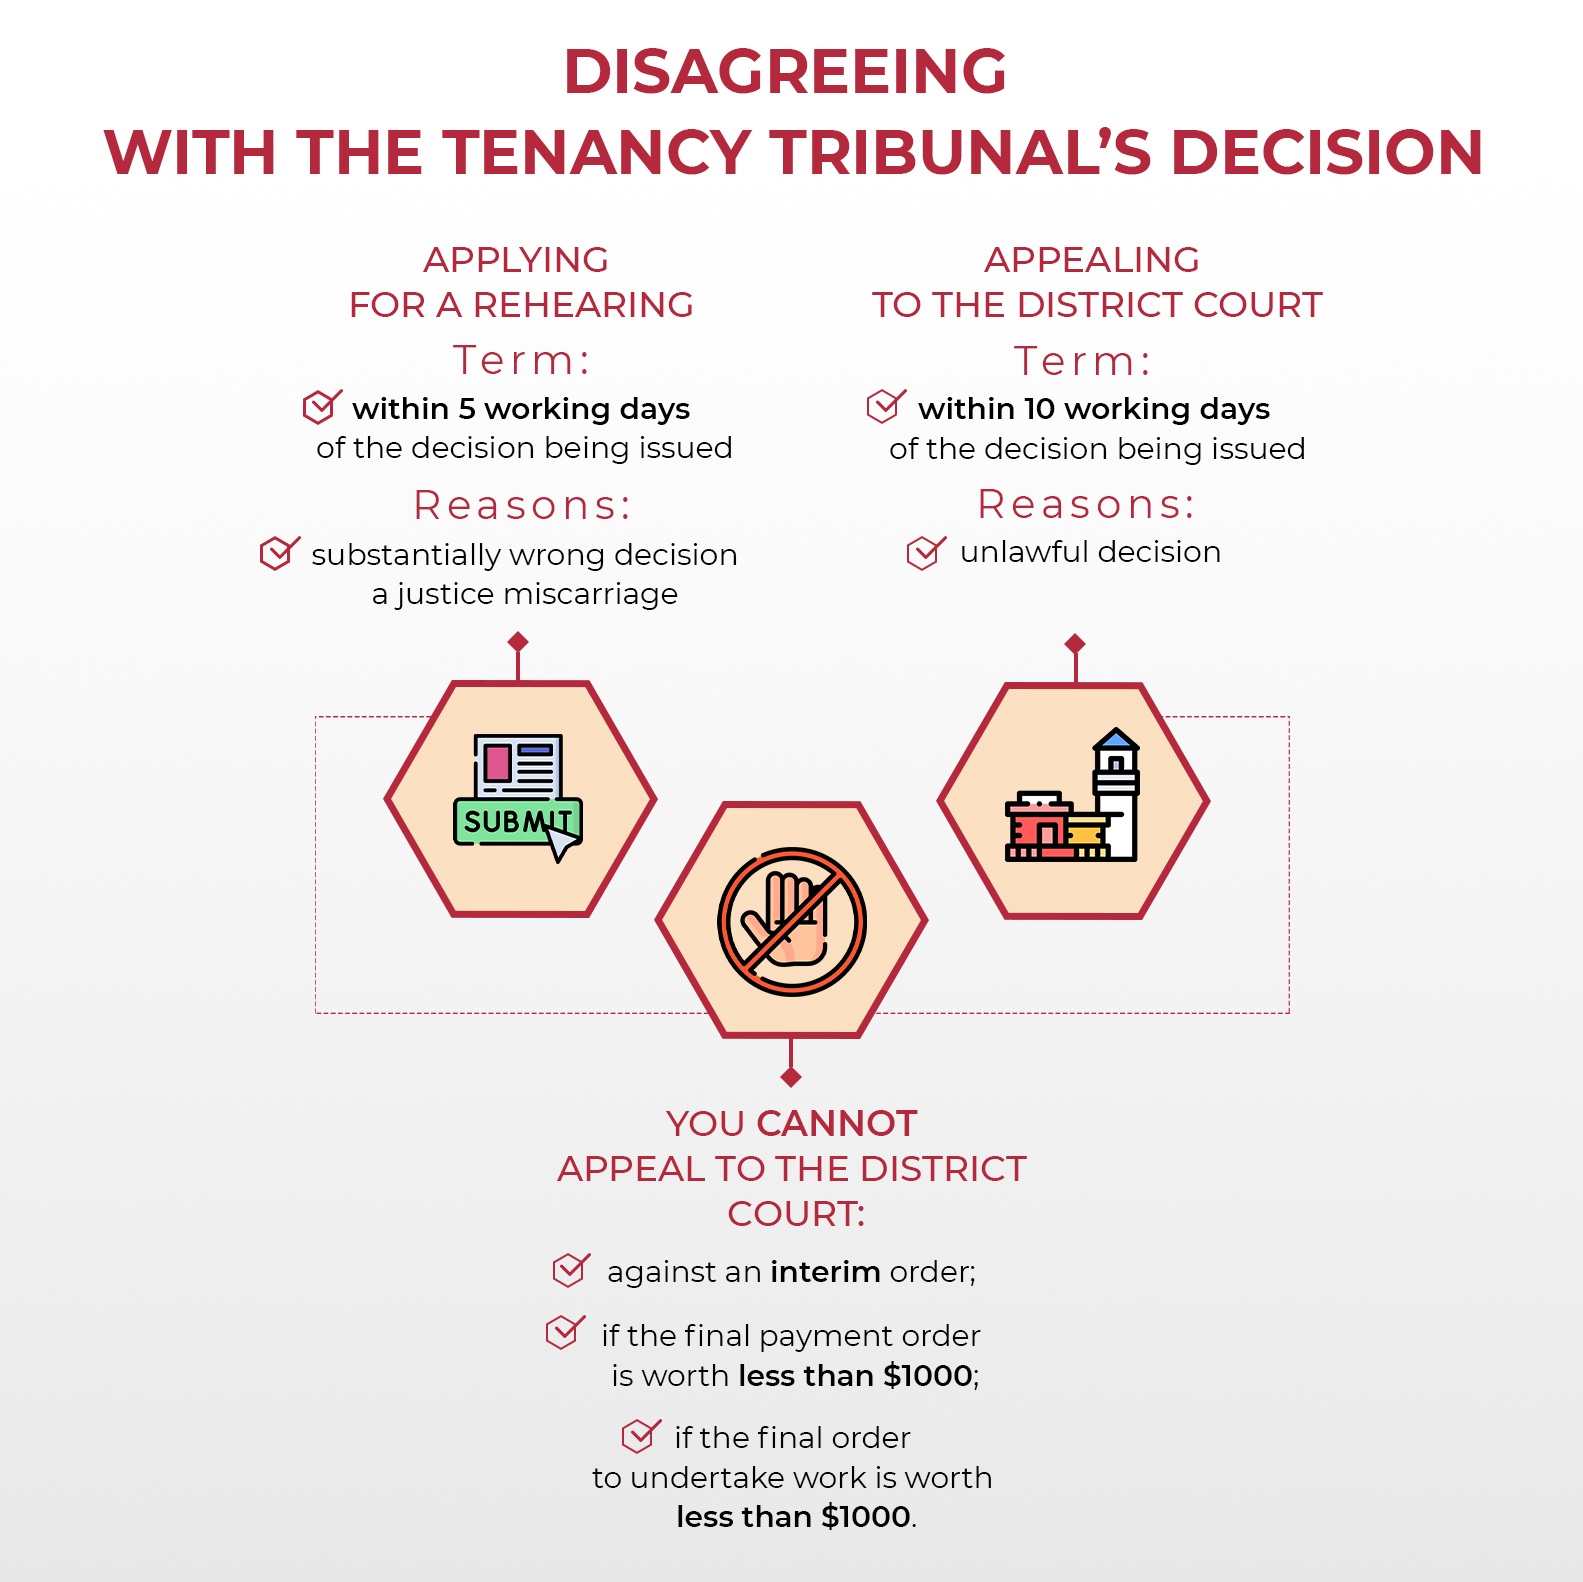 Infographic containing disagreement options